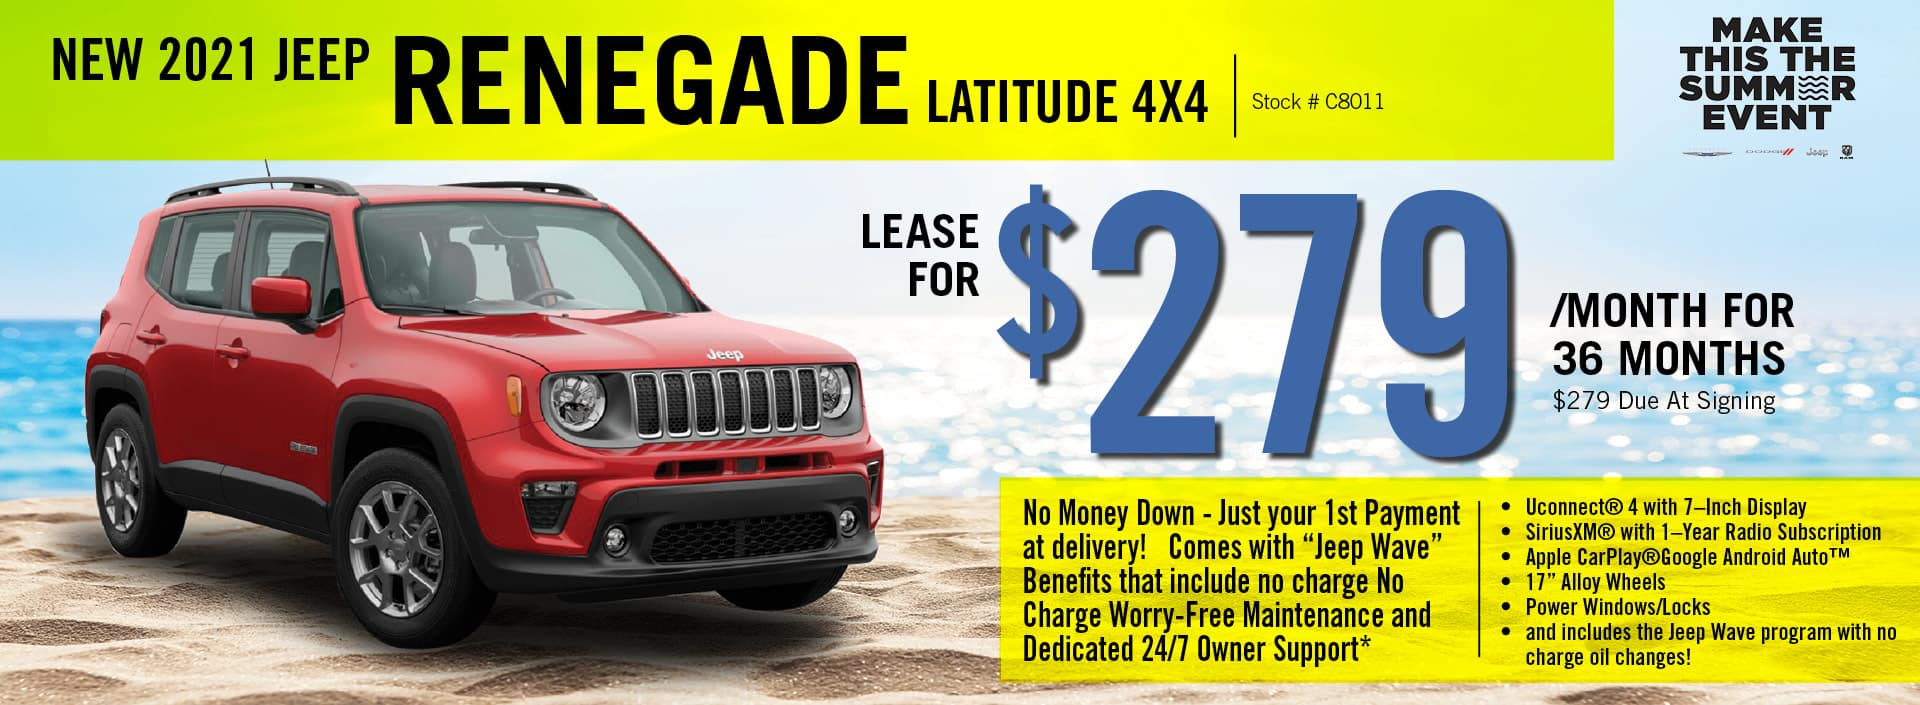 2021 Jeep Renegade Lease Offer   Barre, VT